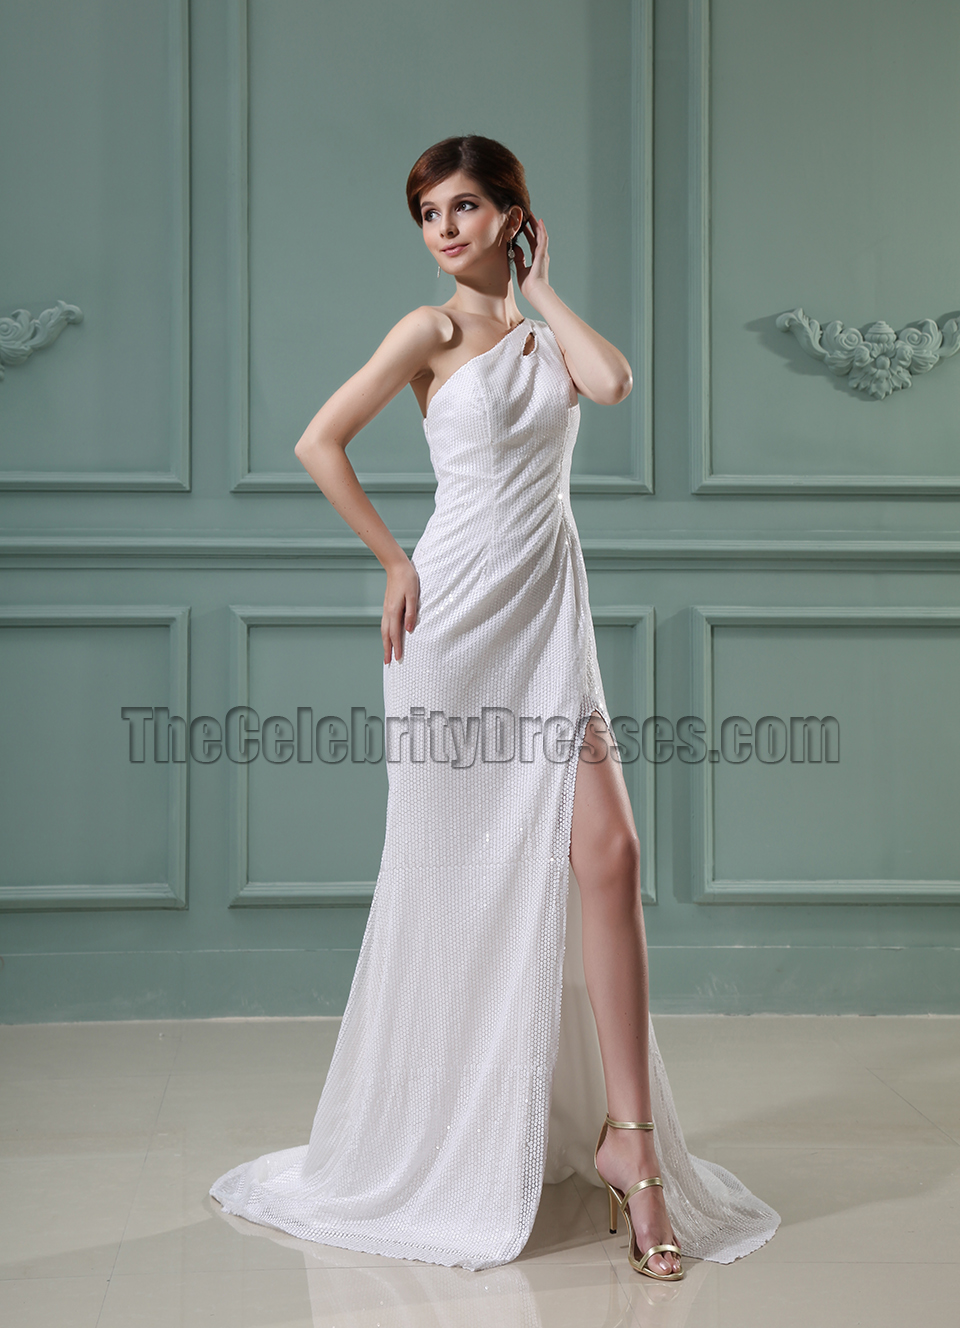 White Sequined Cut Out Backless Prom Gown Evening Dresses ...